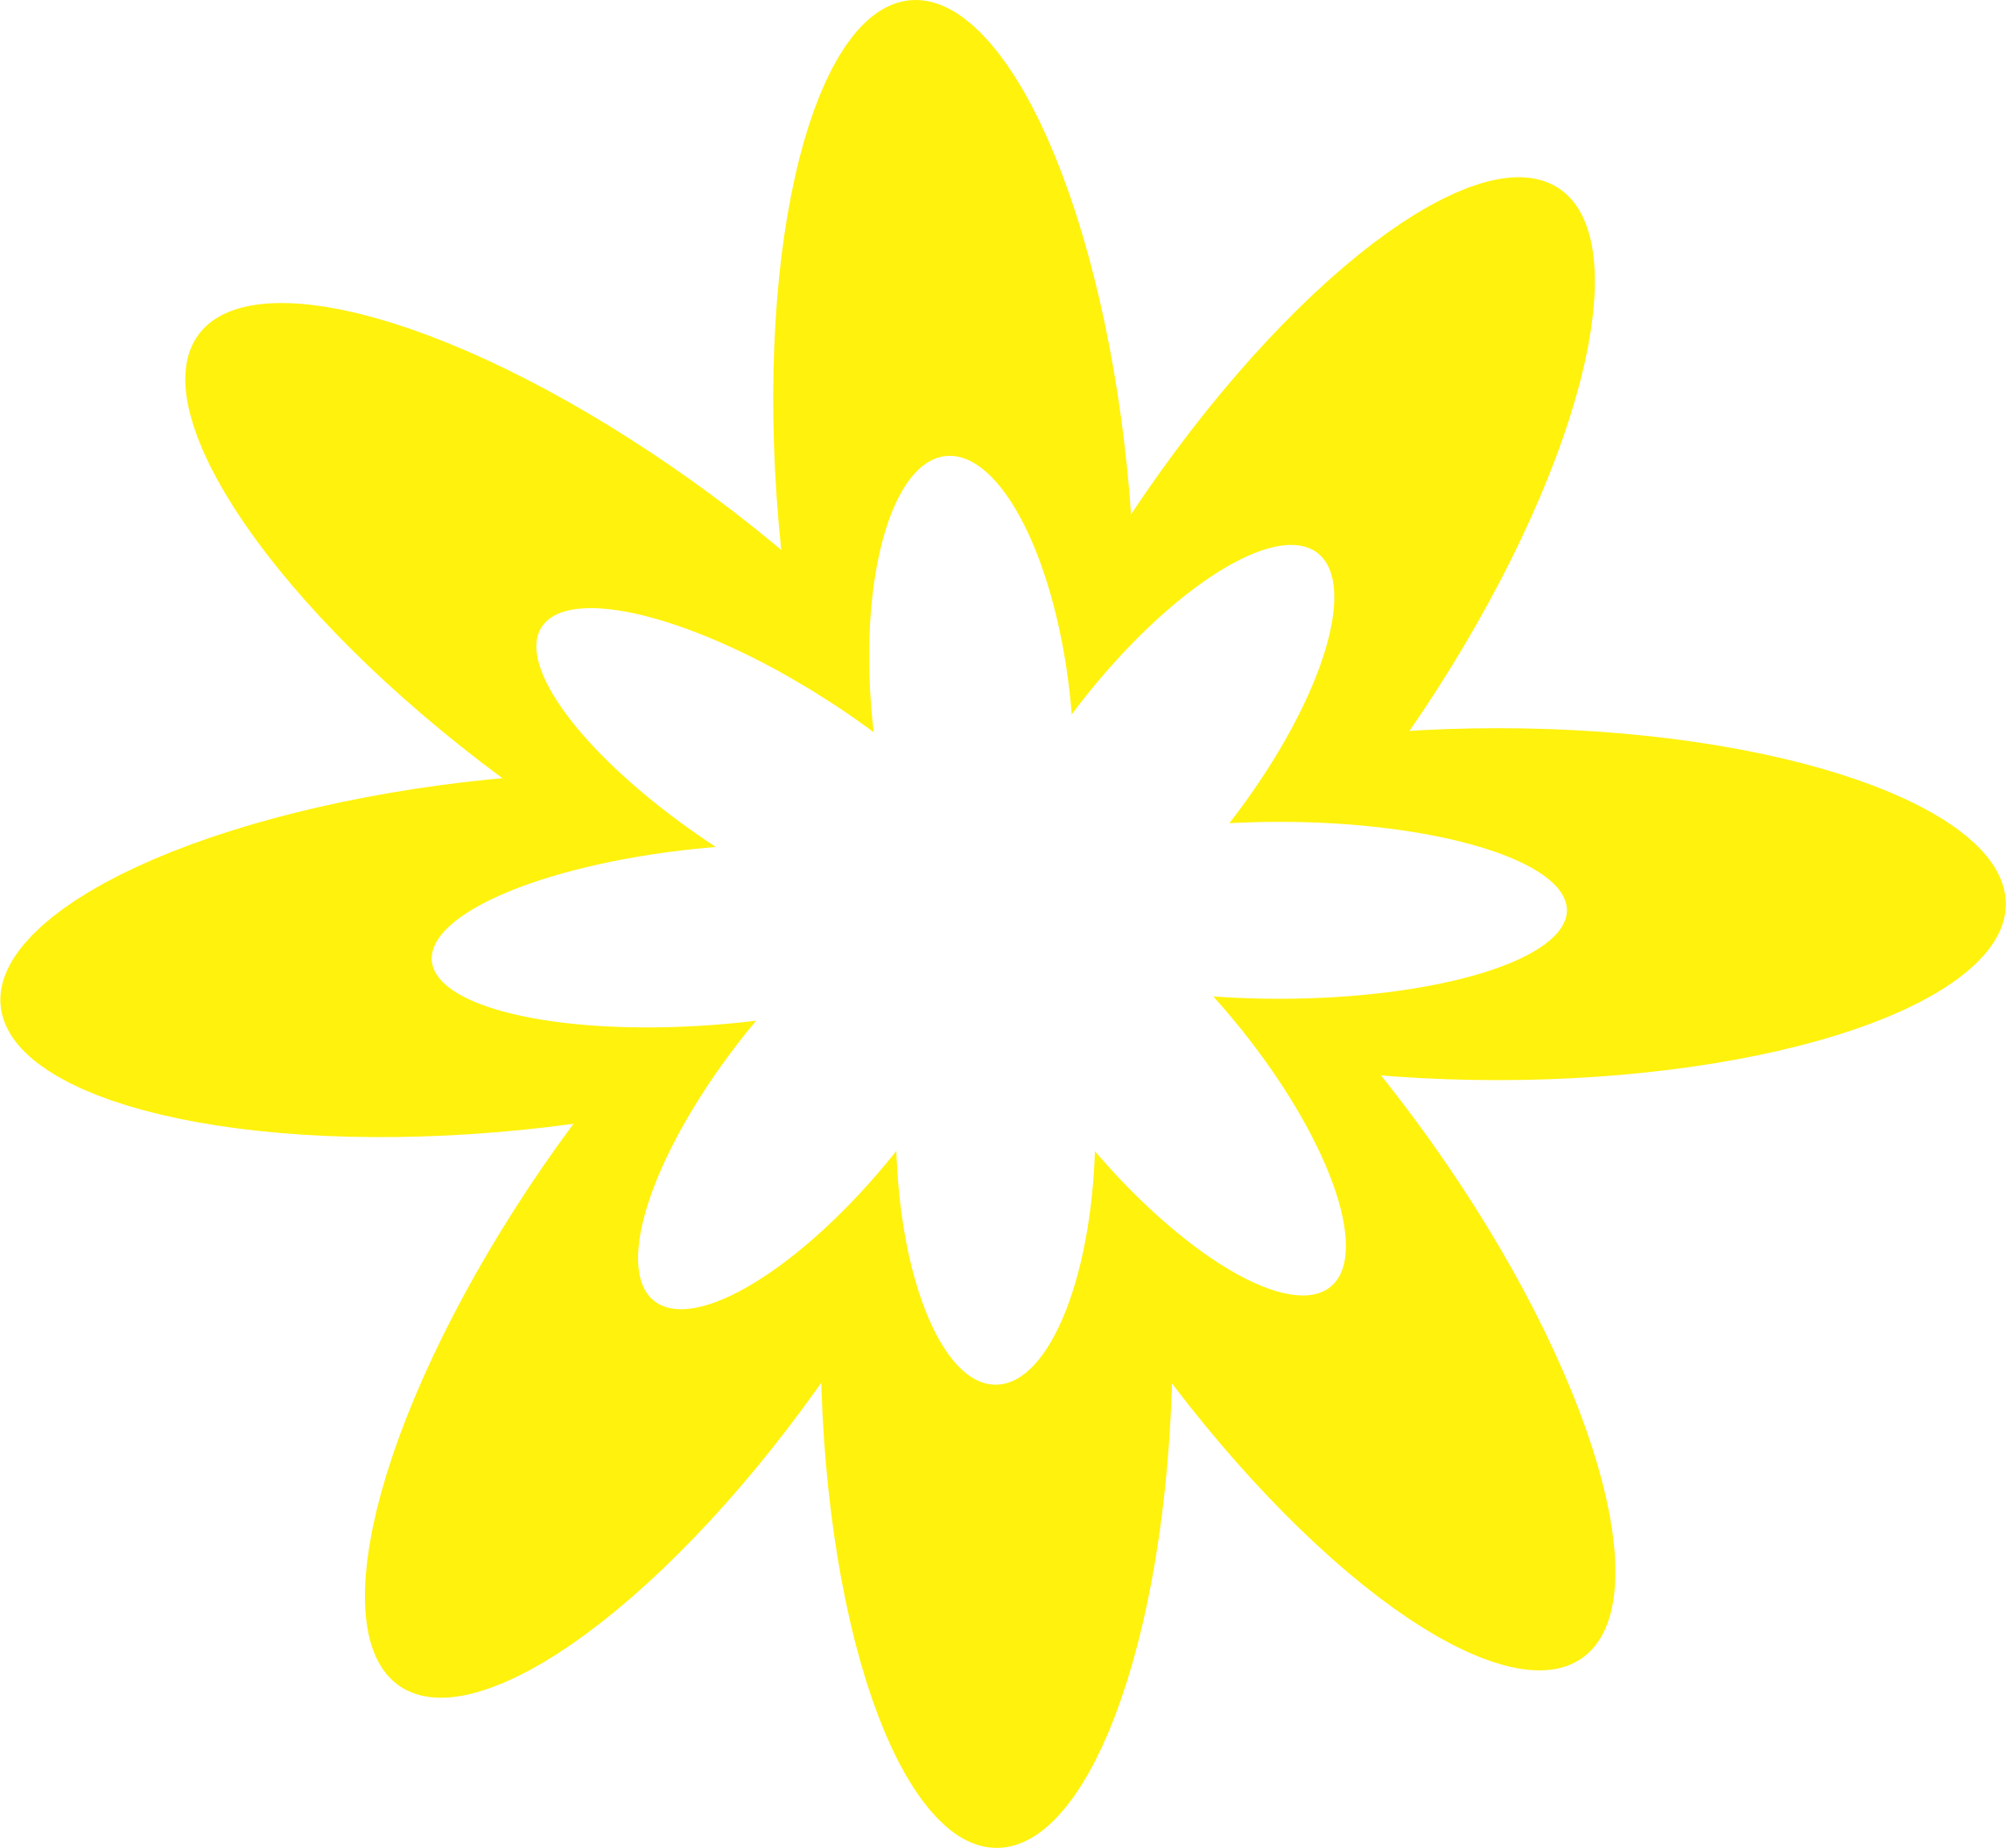 Yellow clipart flower graphic freeuse library Clipart - Yellow Burst Flower graphic freeuse library